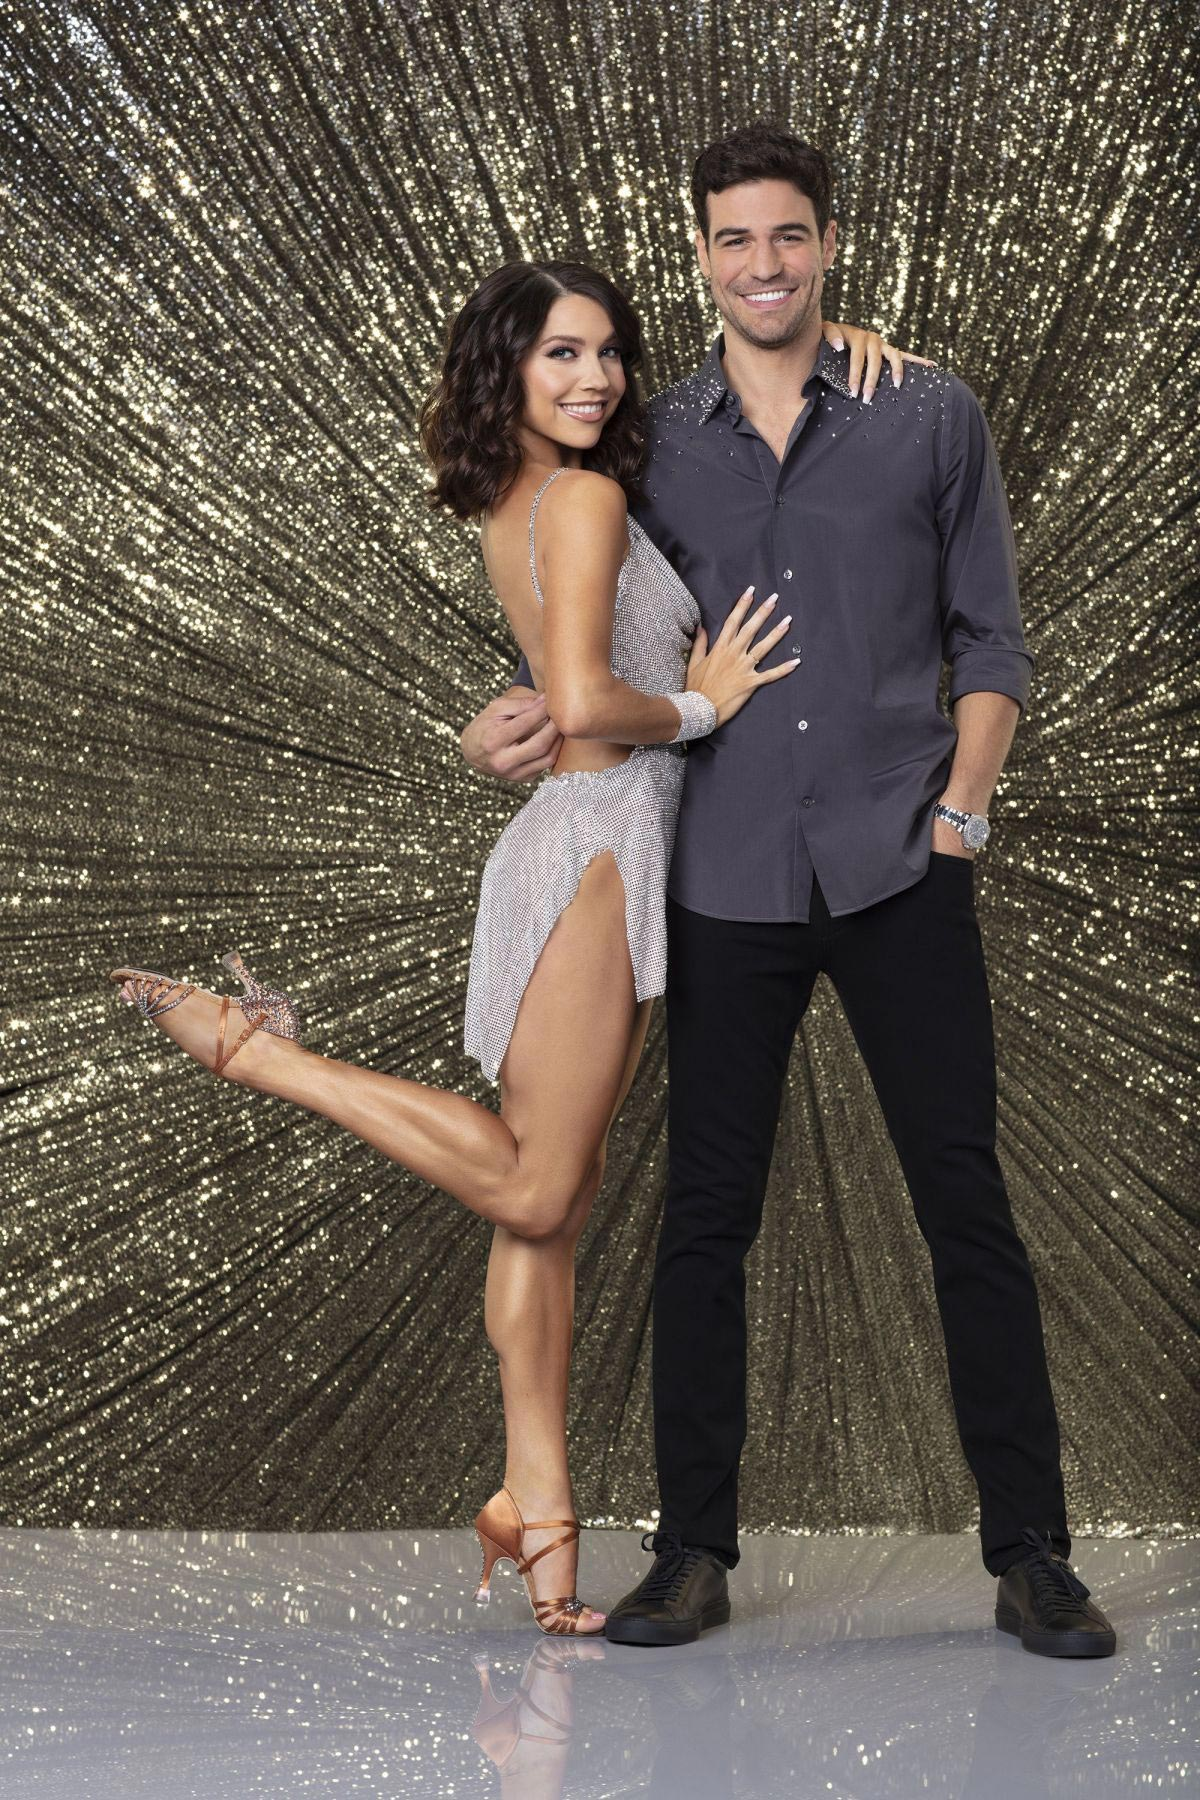 Jenna Johnson at Dancing With the Stars, Season 27 Promos 2018/09/16 1